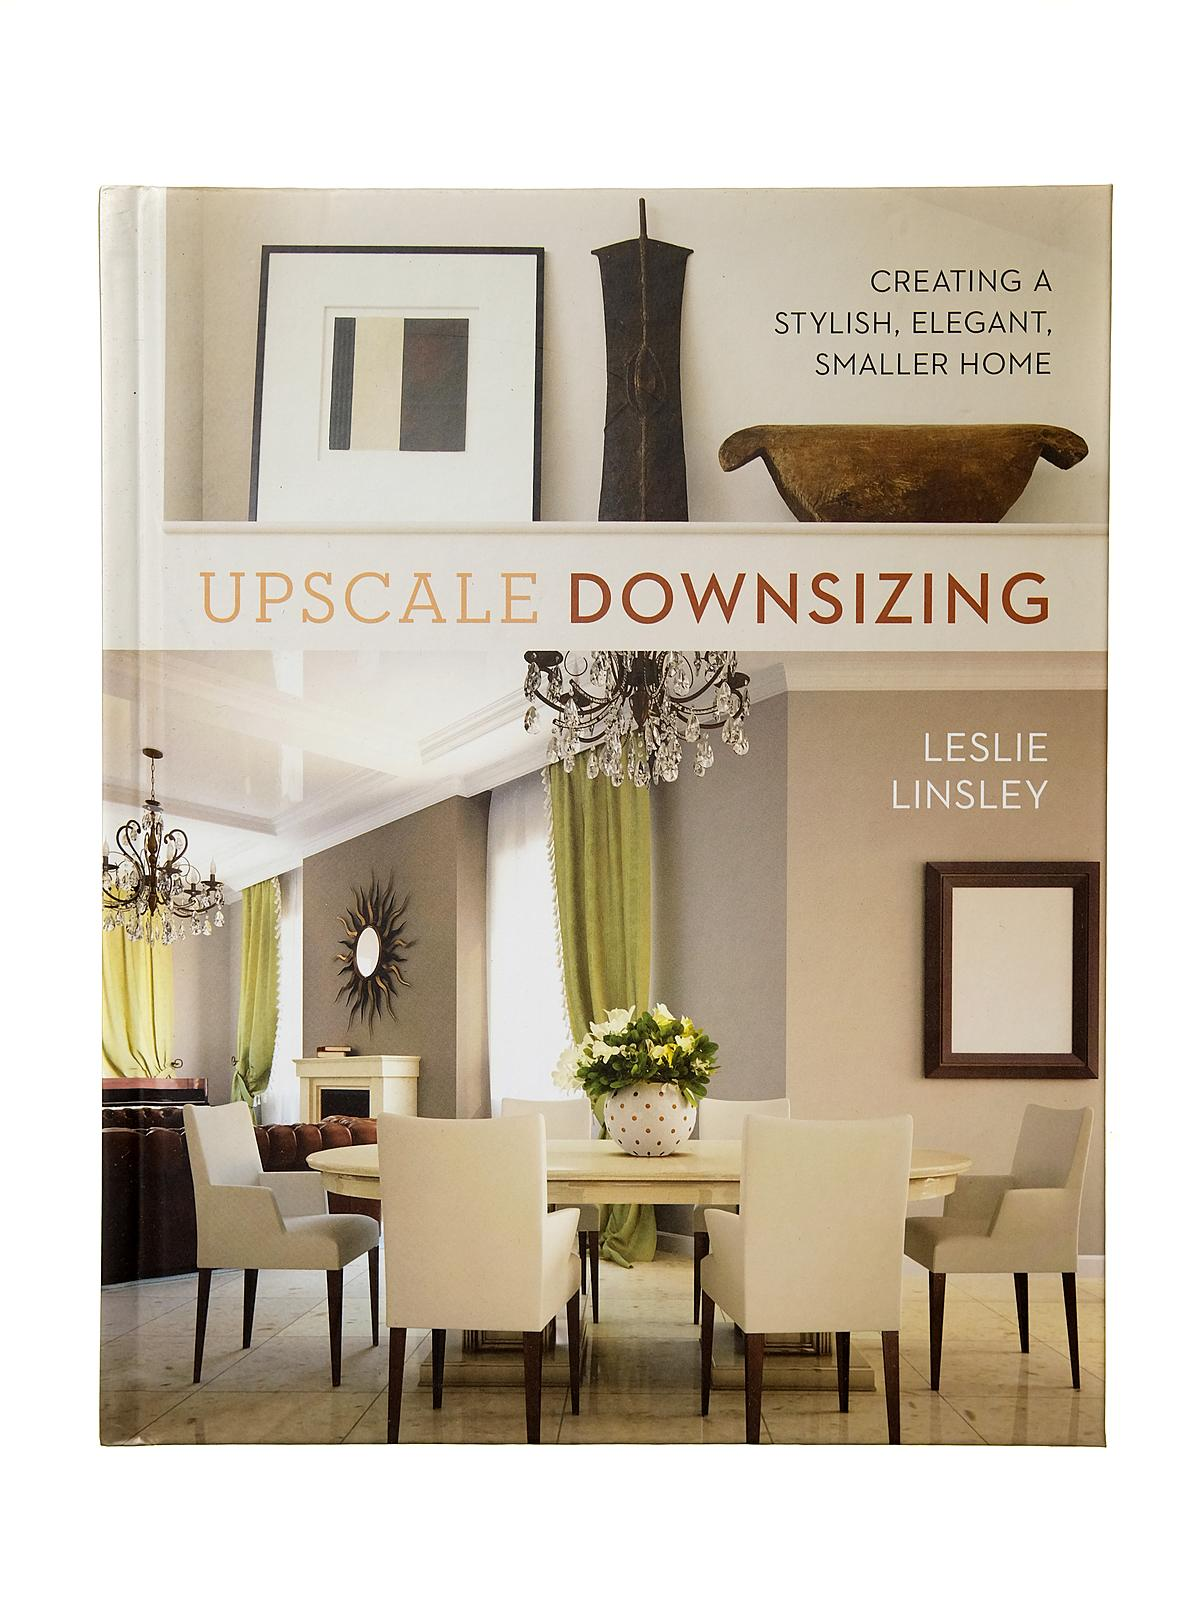 Upscale Downsizing